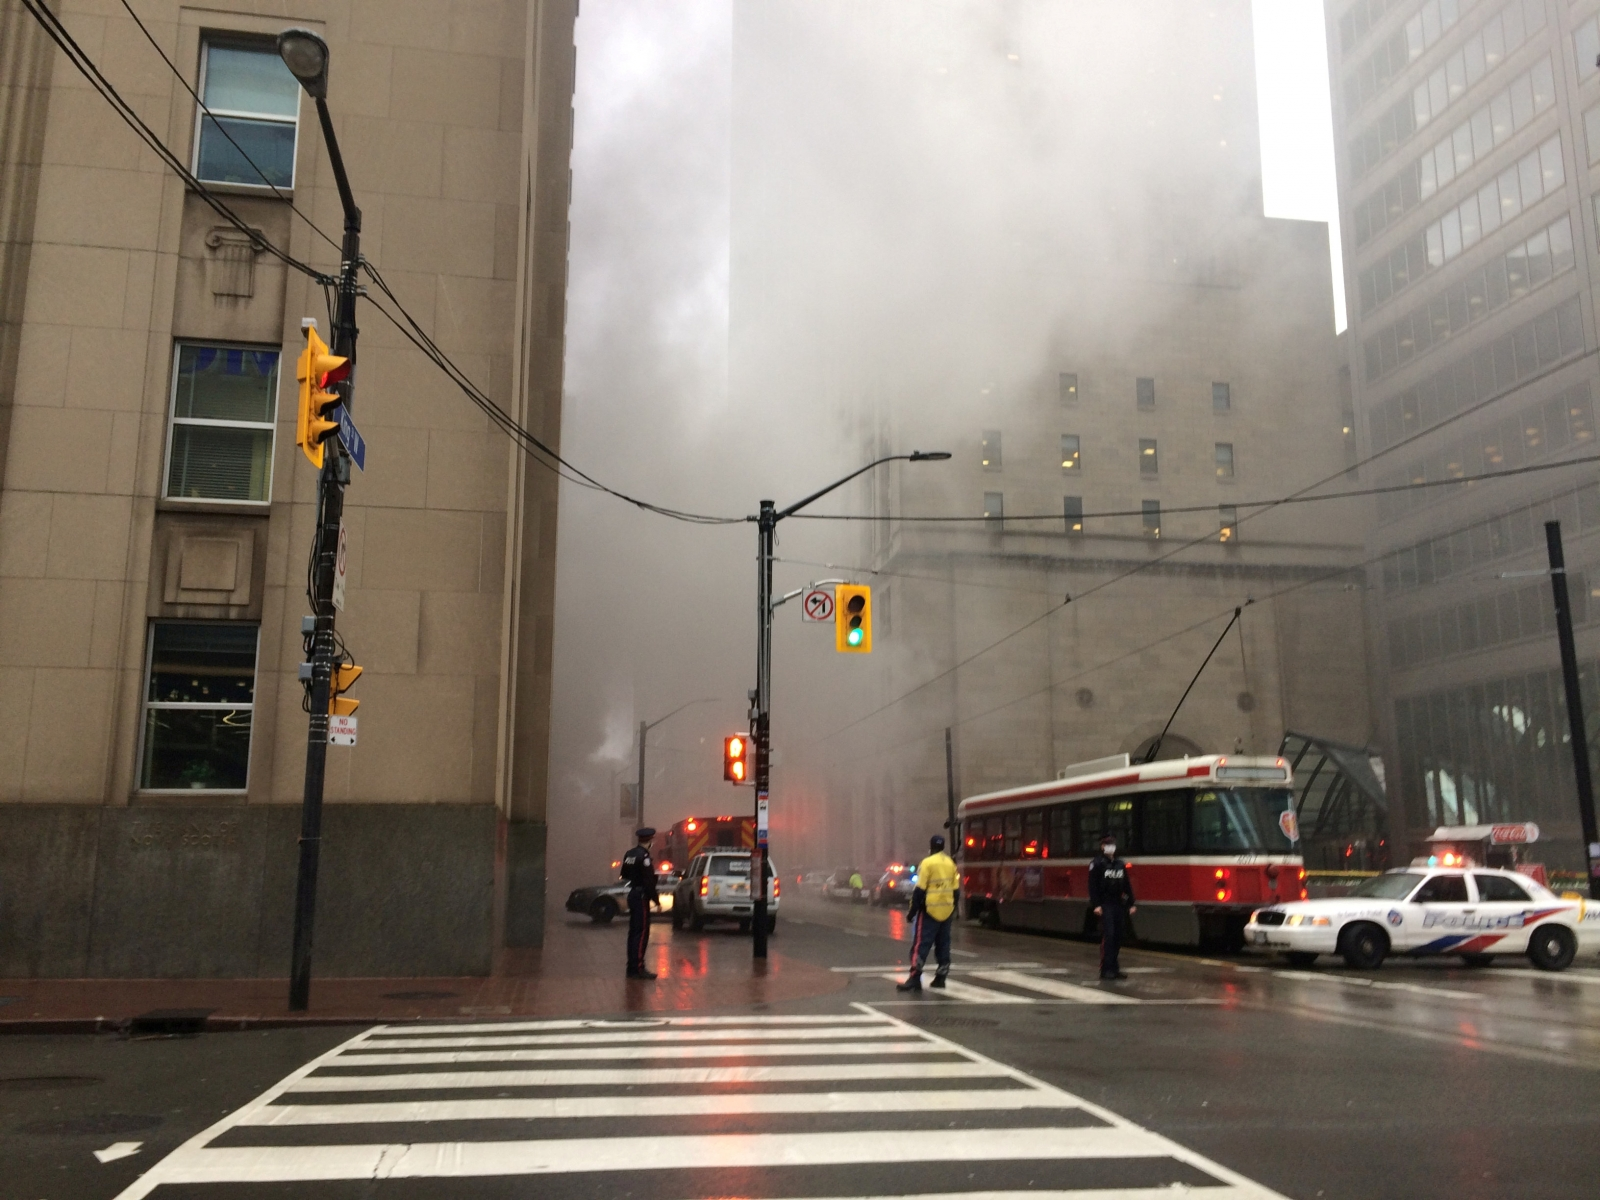 Toronto financial district fire